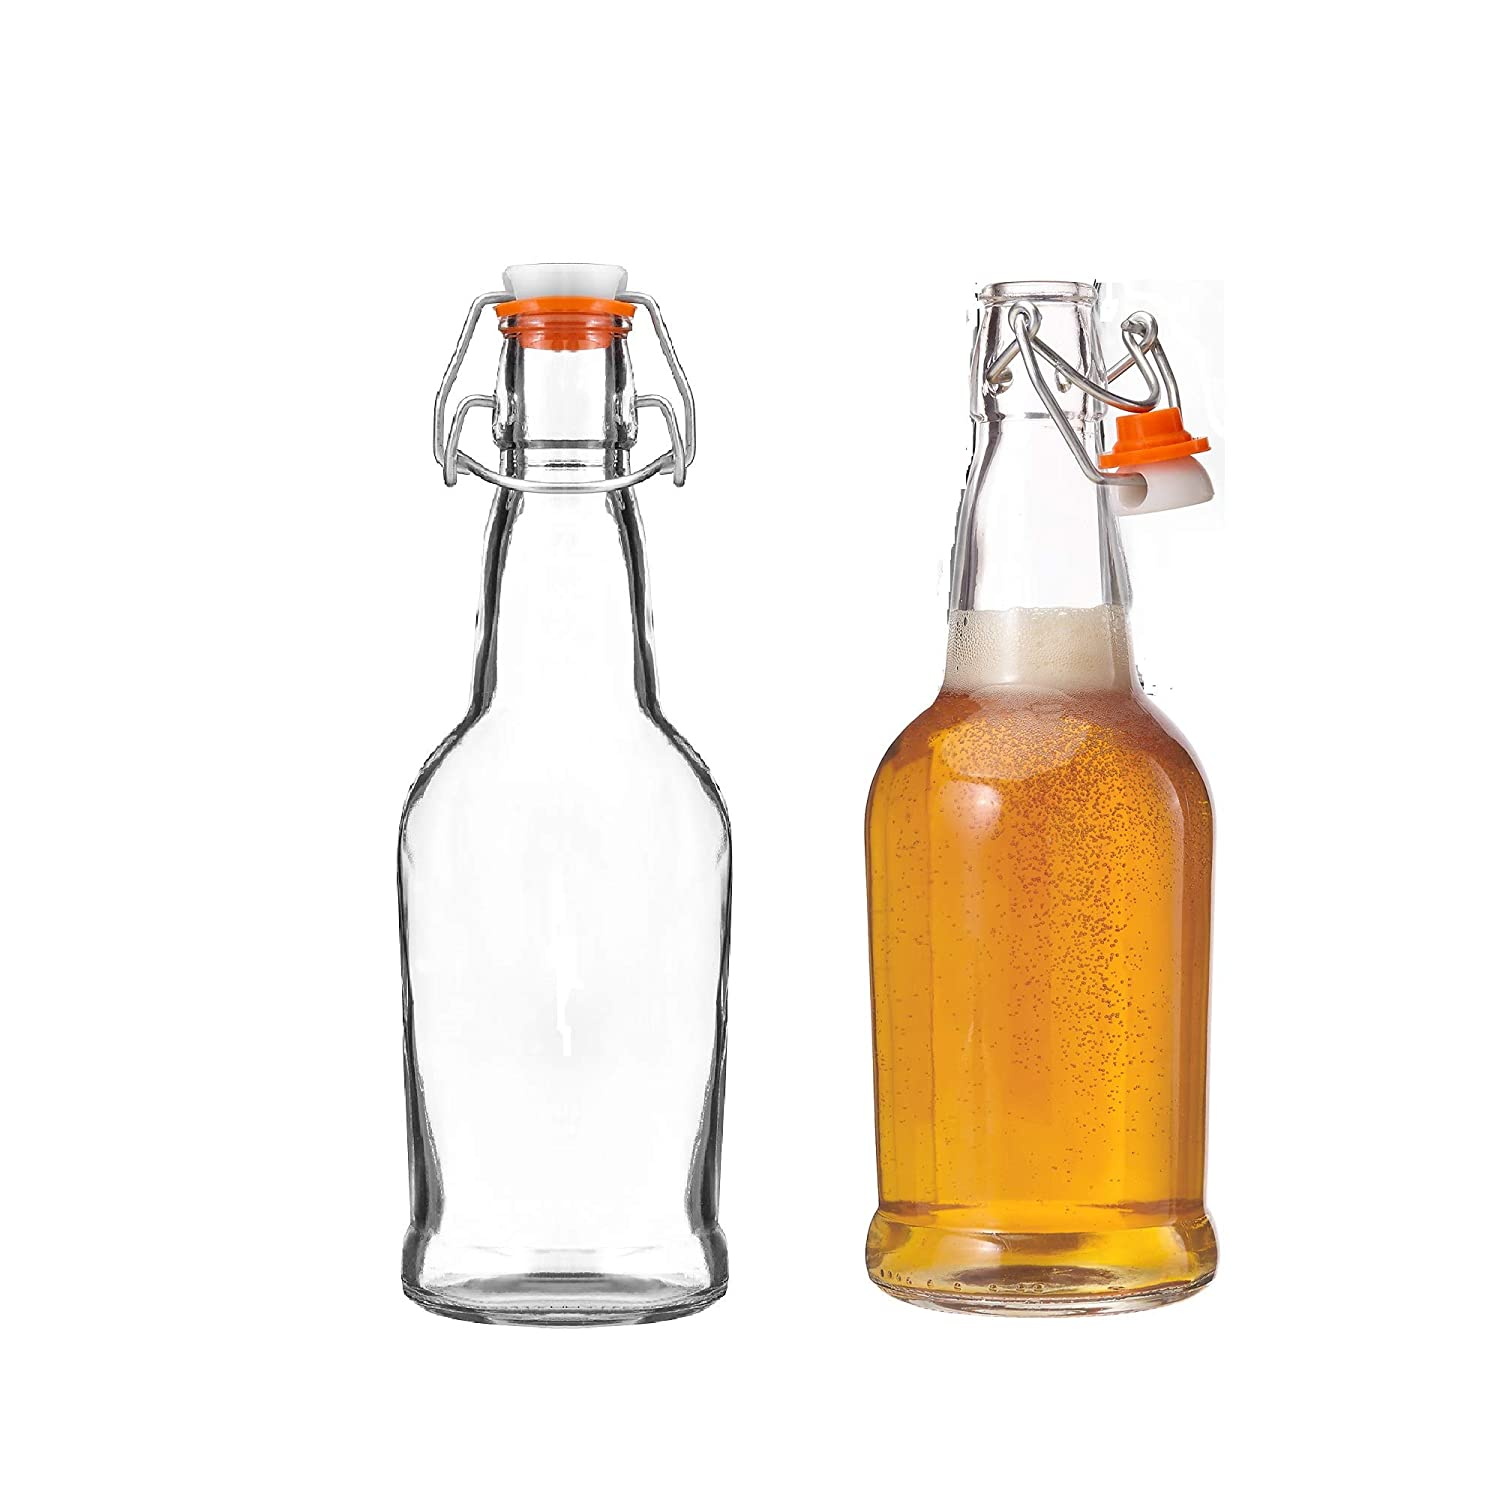 Airtight Rubber Silicone Lid for Kombucha 2 Pack Dressings and More Home Brewing Grolsch Bottle Set Kitchen Lux Glass Beer Bottles with Swing Top Cap